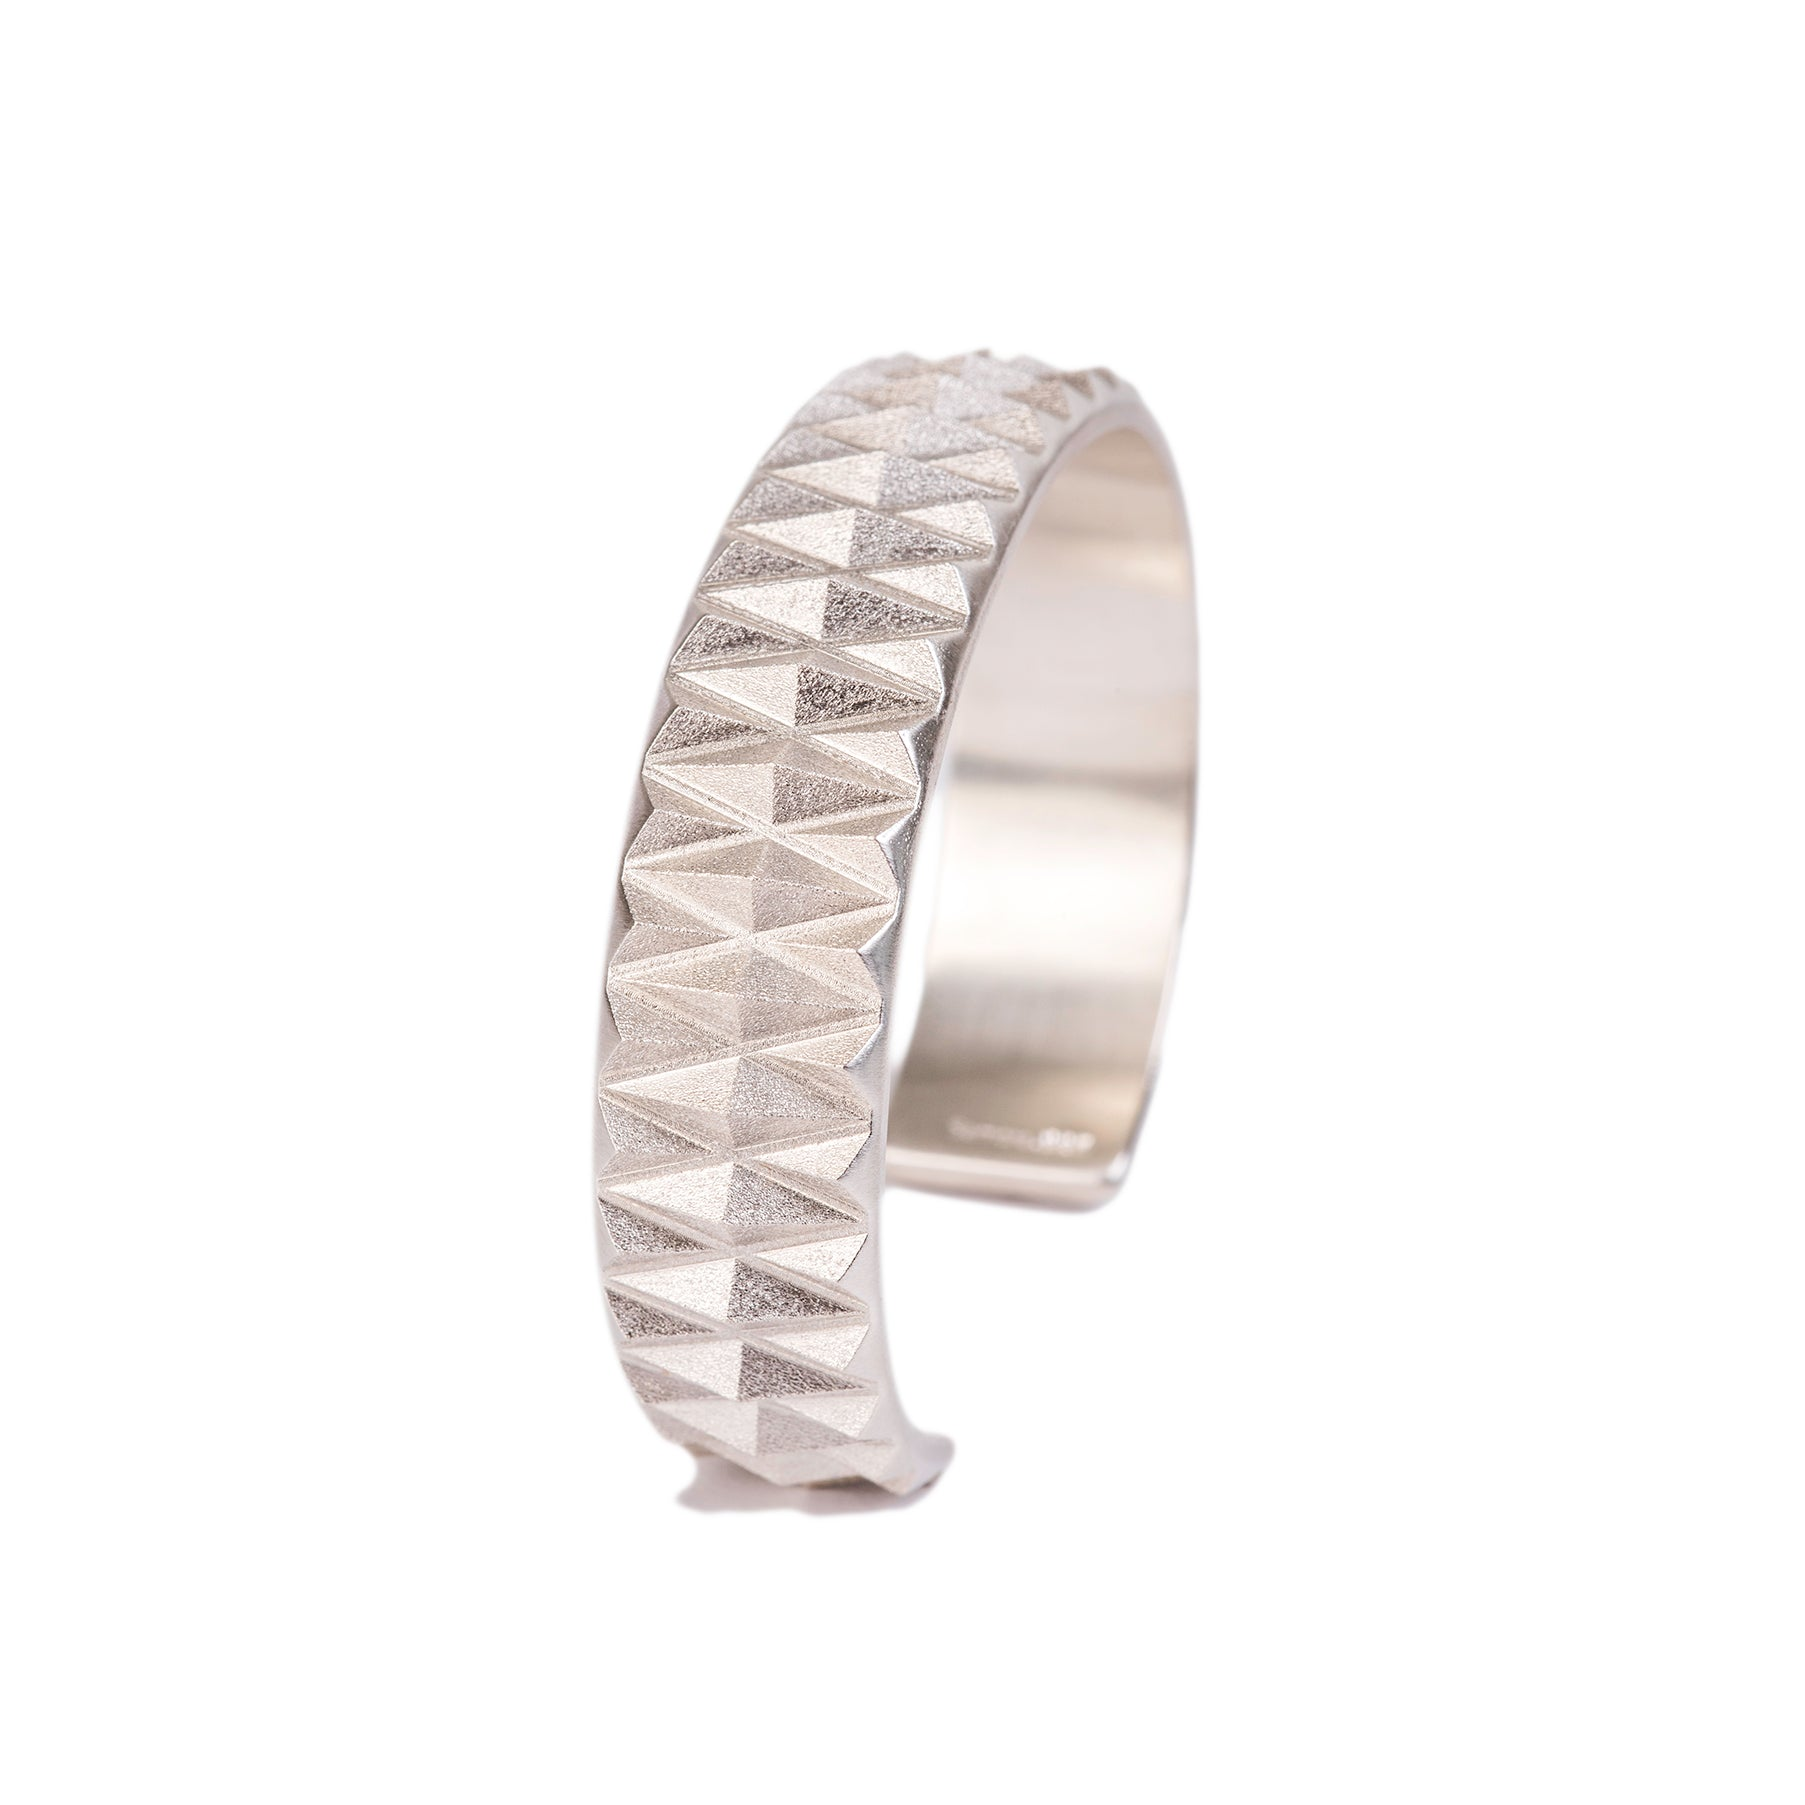 Diamond Peak Cuff